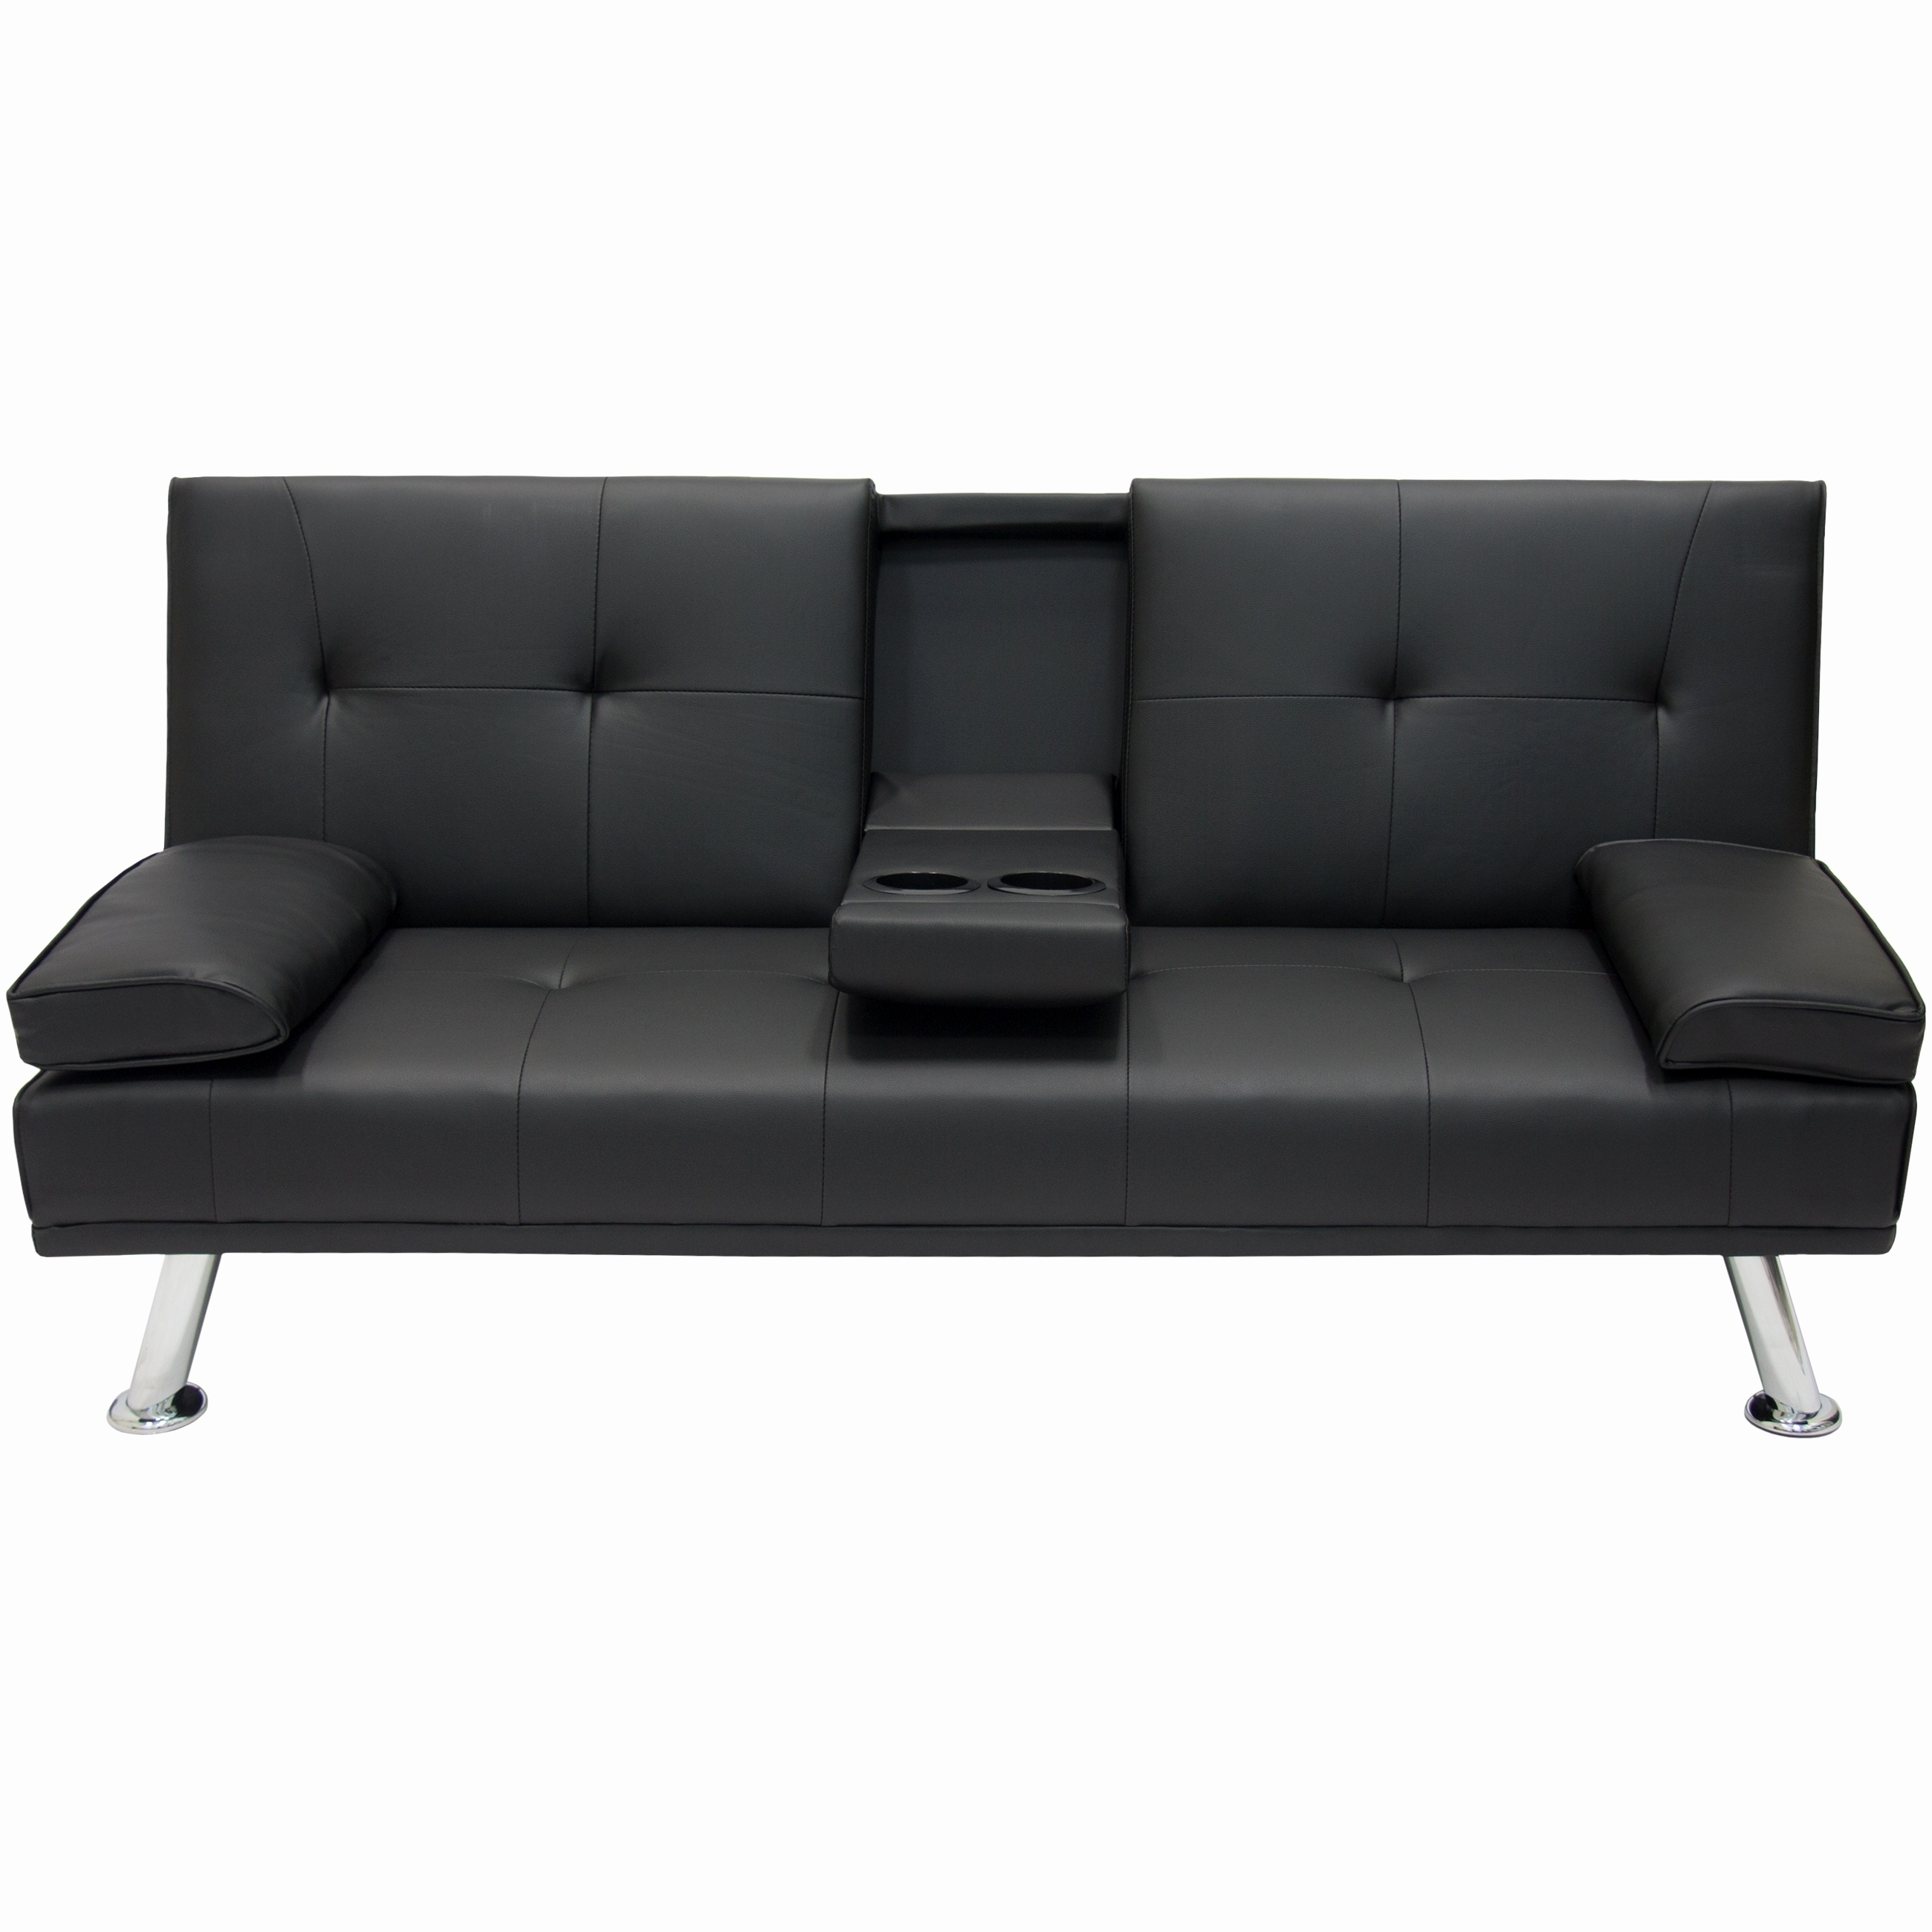 Newport Sofas Inside Latest Fresh Newport 3 Seater Sofa Bed With Chaise 2018 – Couches And (View 4 of 15)